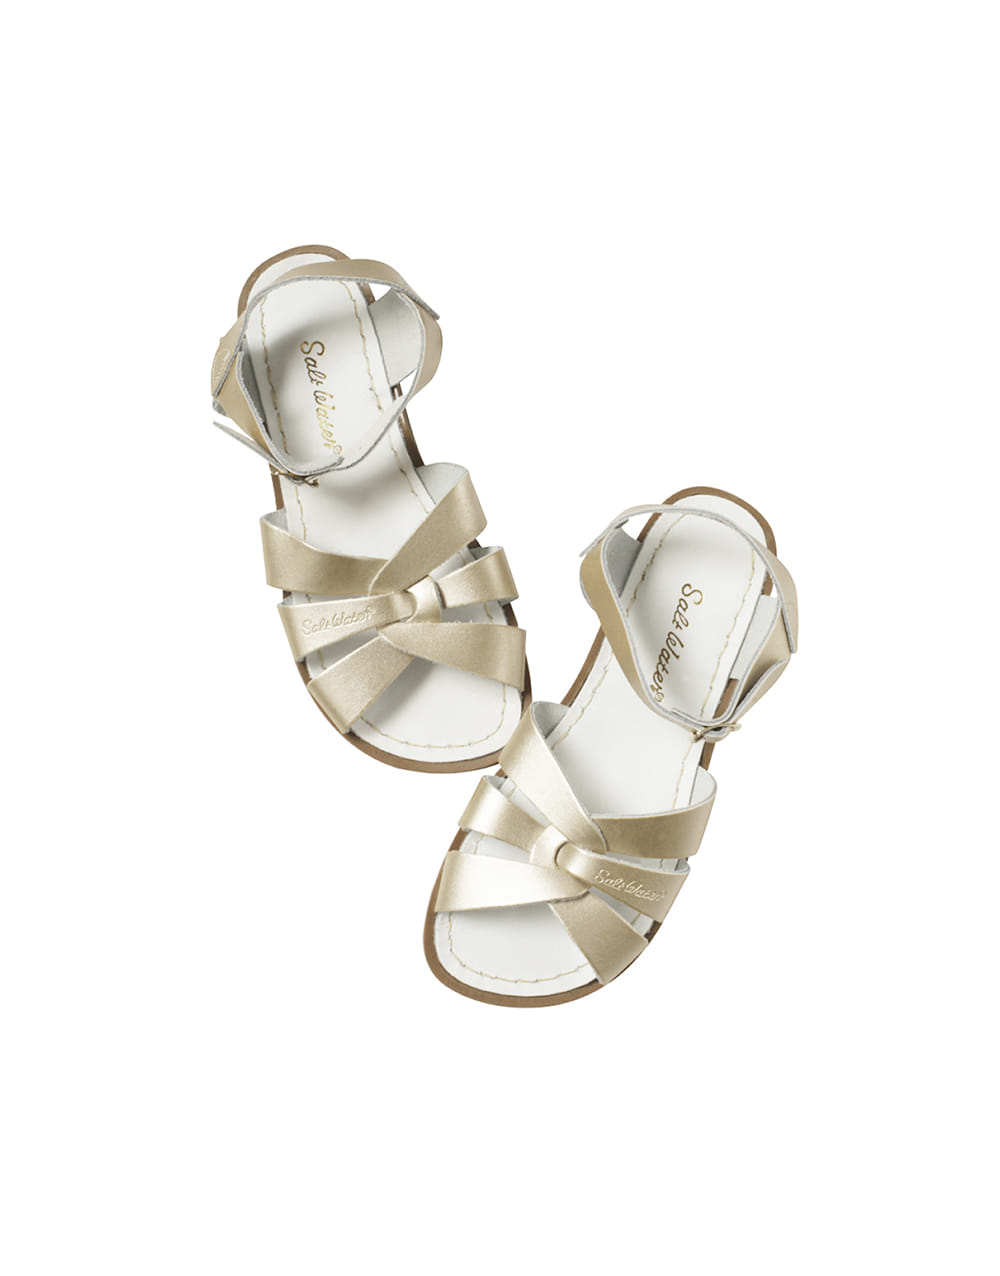 SALT-WATER SANDAL  ADULT ORIGINAL PREMIUM  Gold